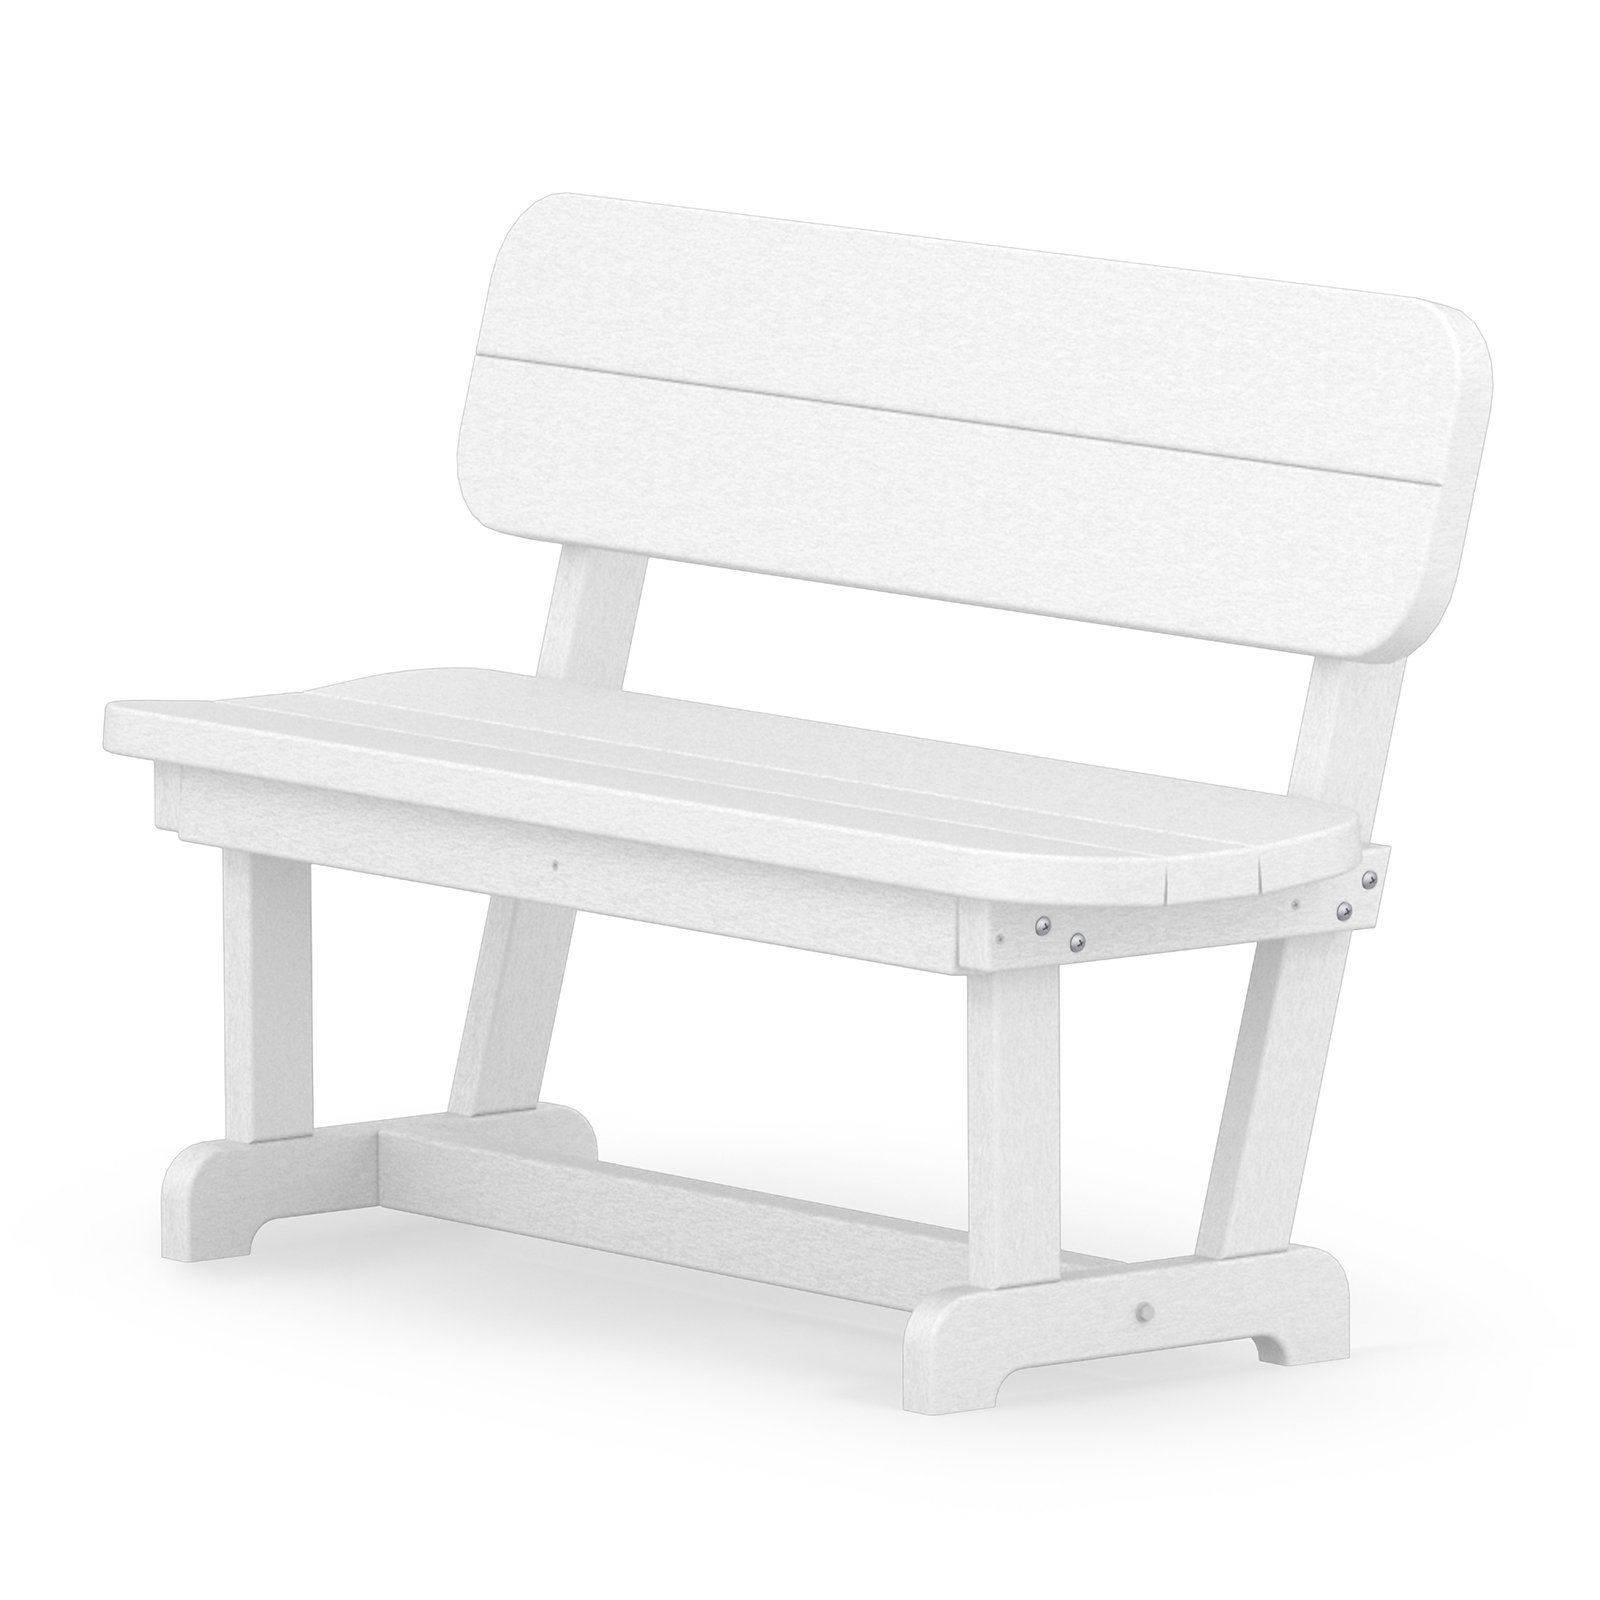 POLYWOOD Park Recycled Plastic 48 in. Park Bench by Polywood